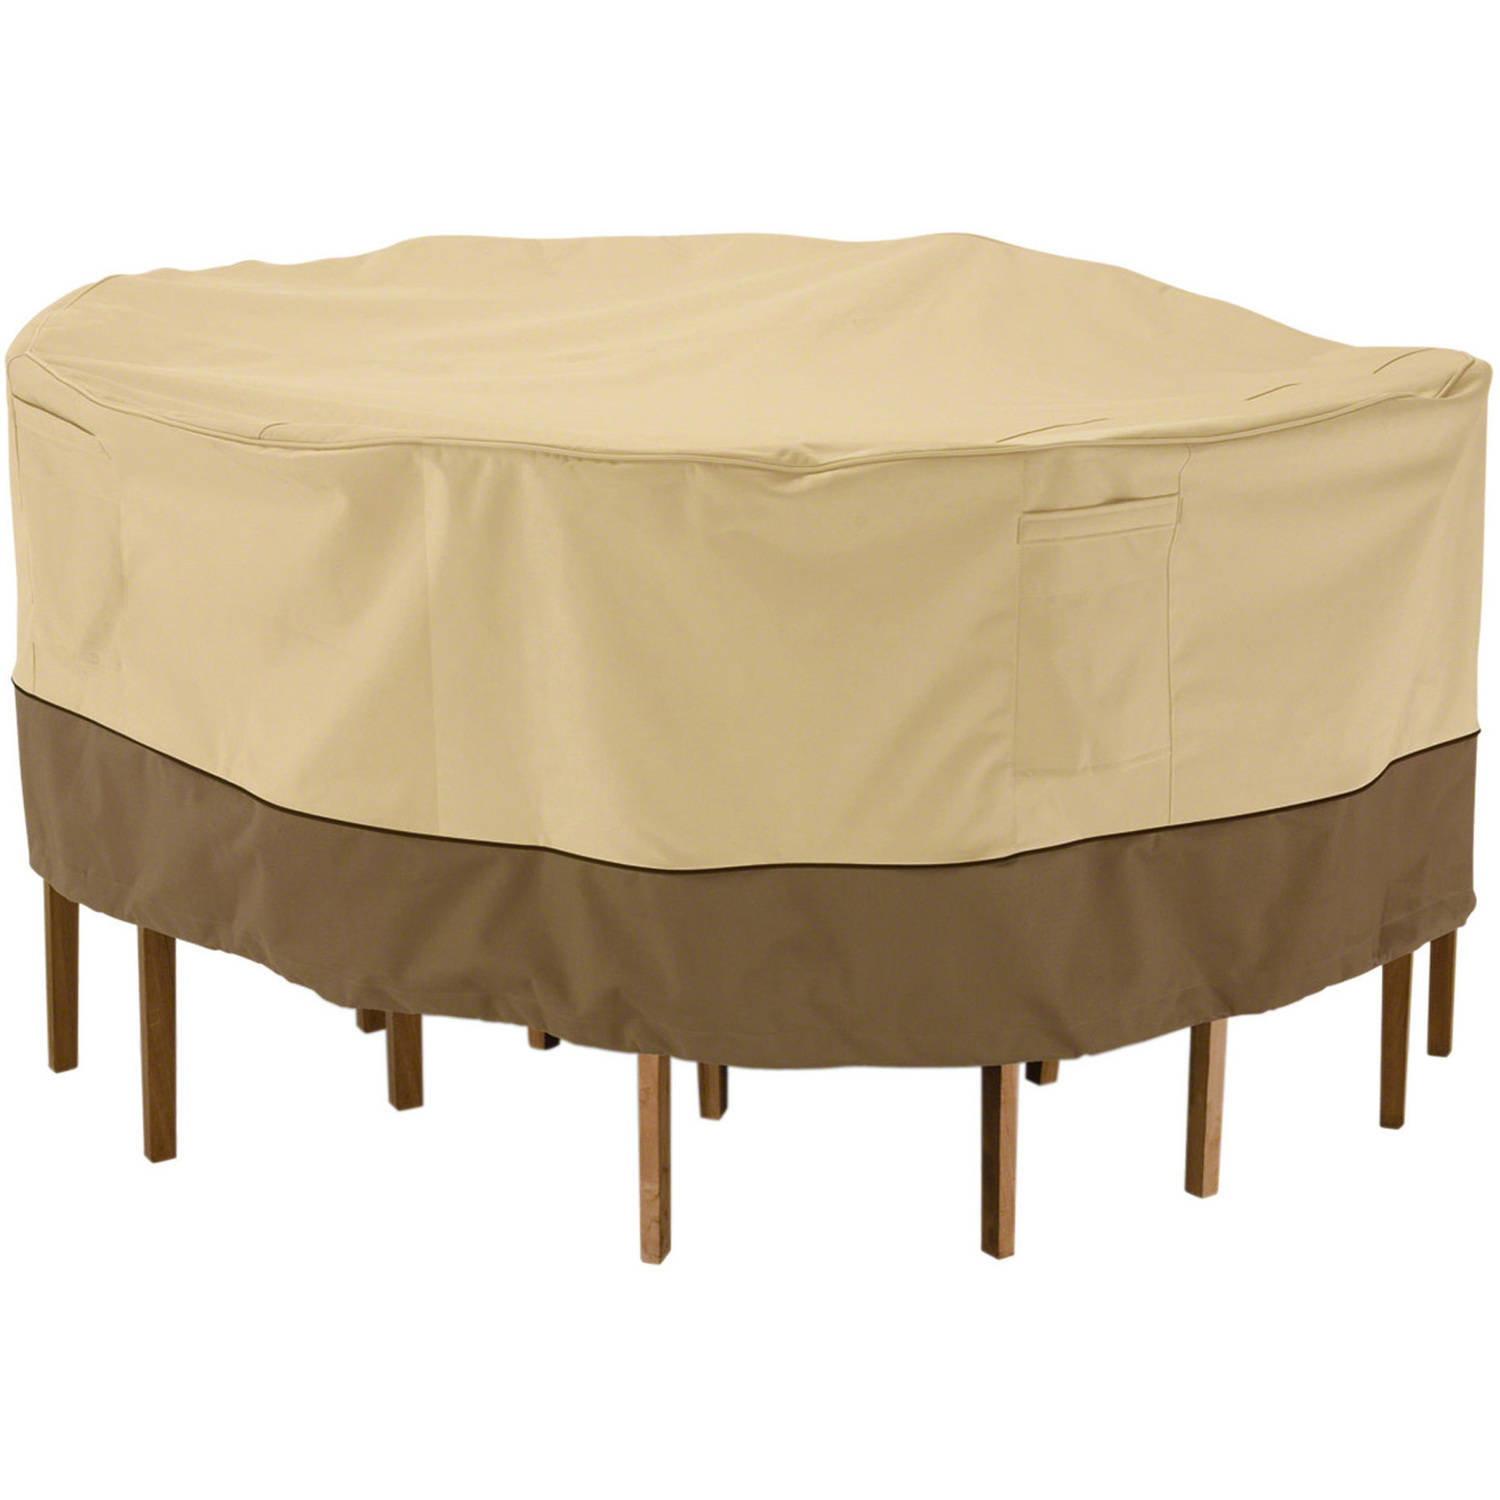 Classic Accessories Veranda Round Patio Table U0026 Chair Set Cover   Durable  And Water Resistant Outdoor  Outdoor Patio Furniture Covers